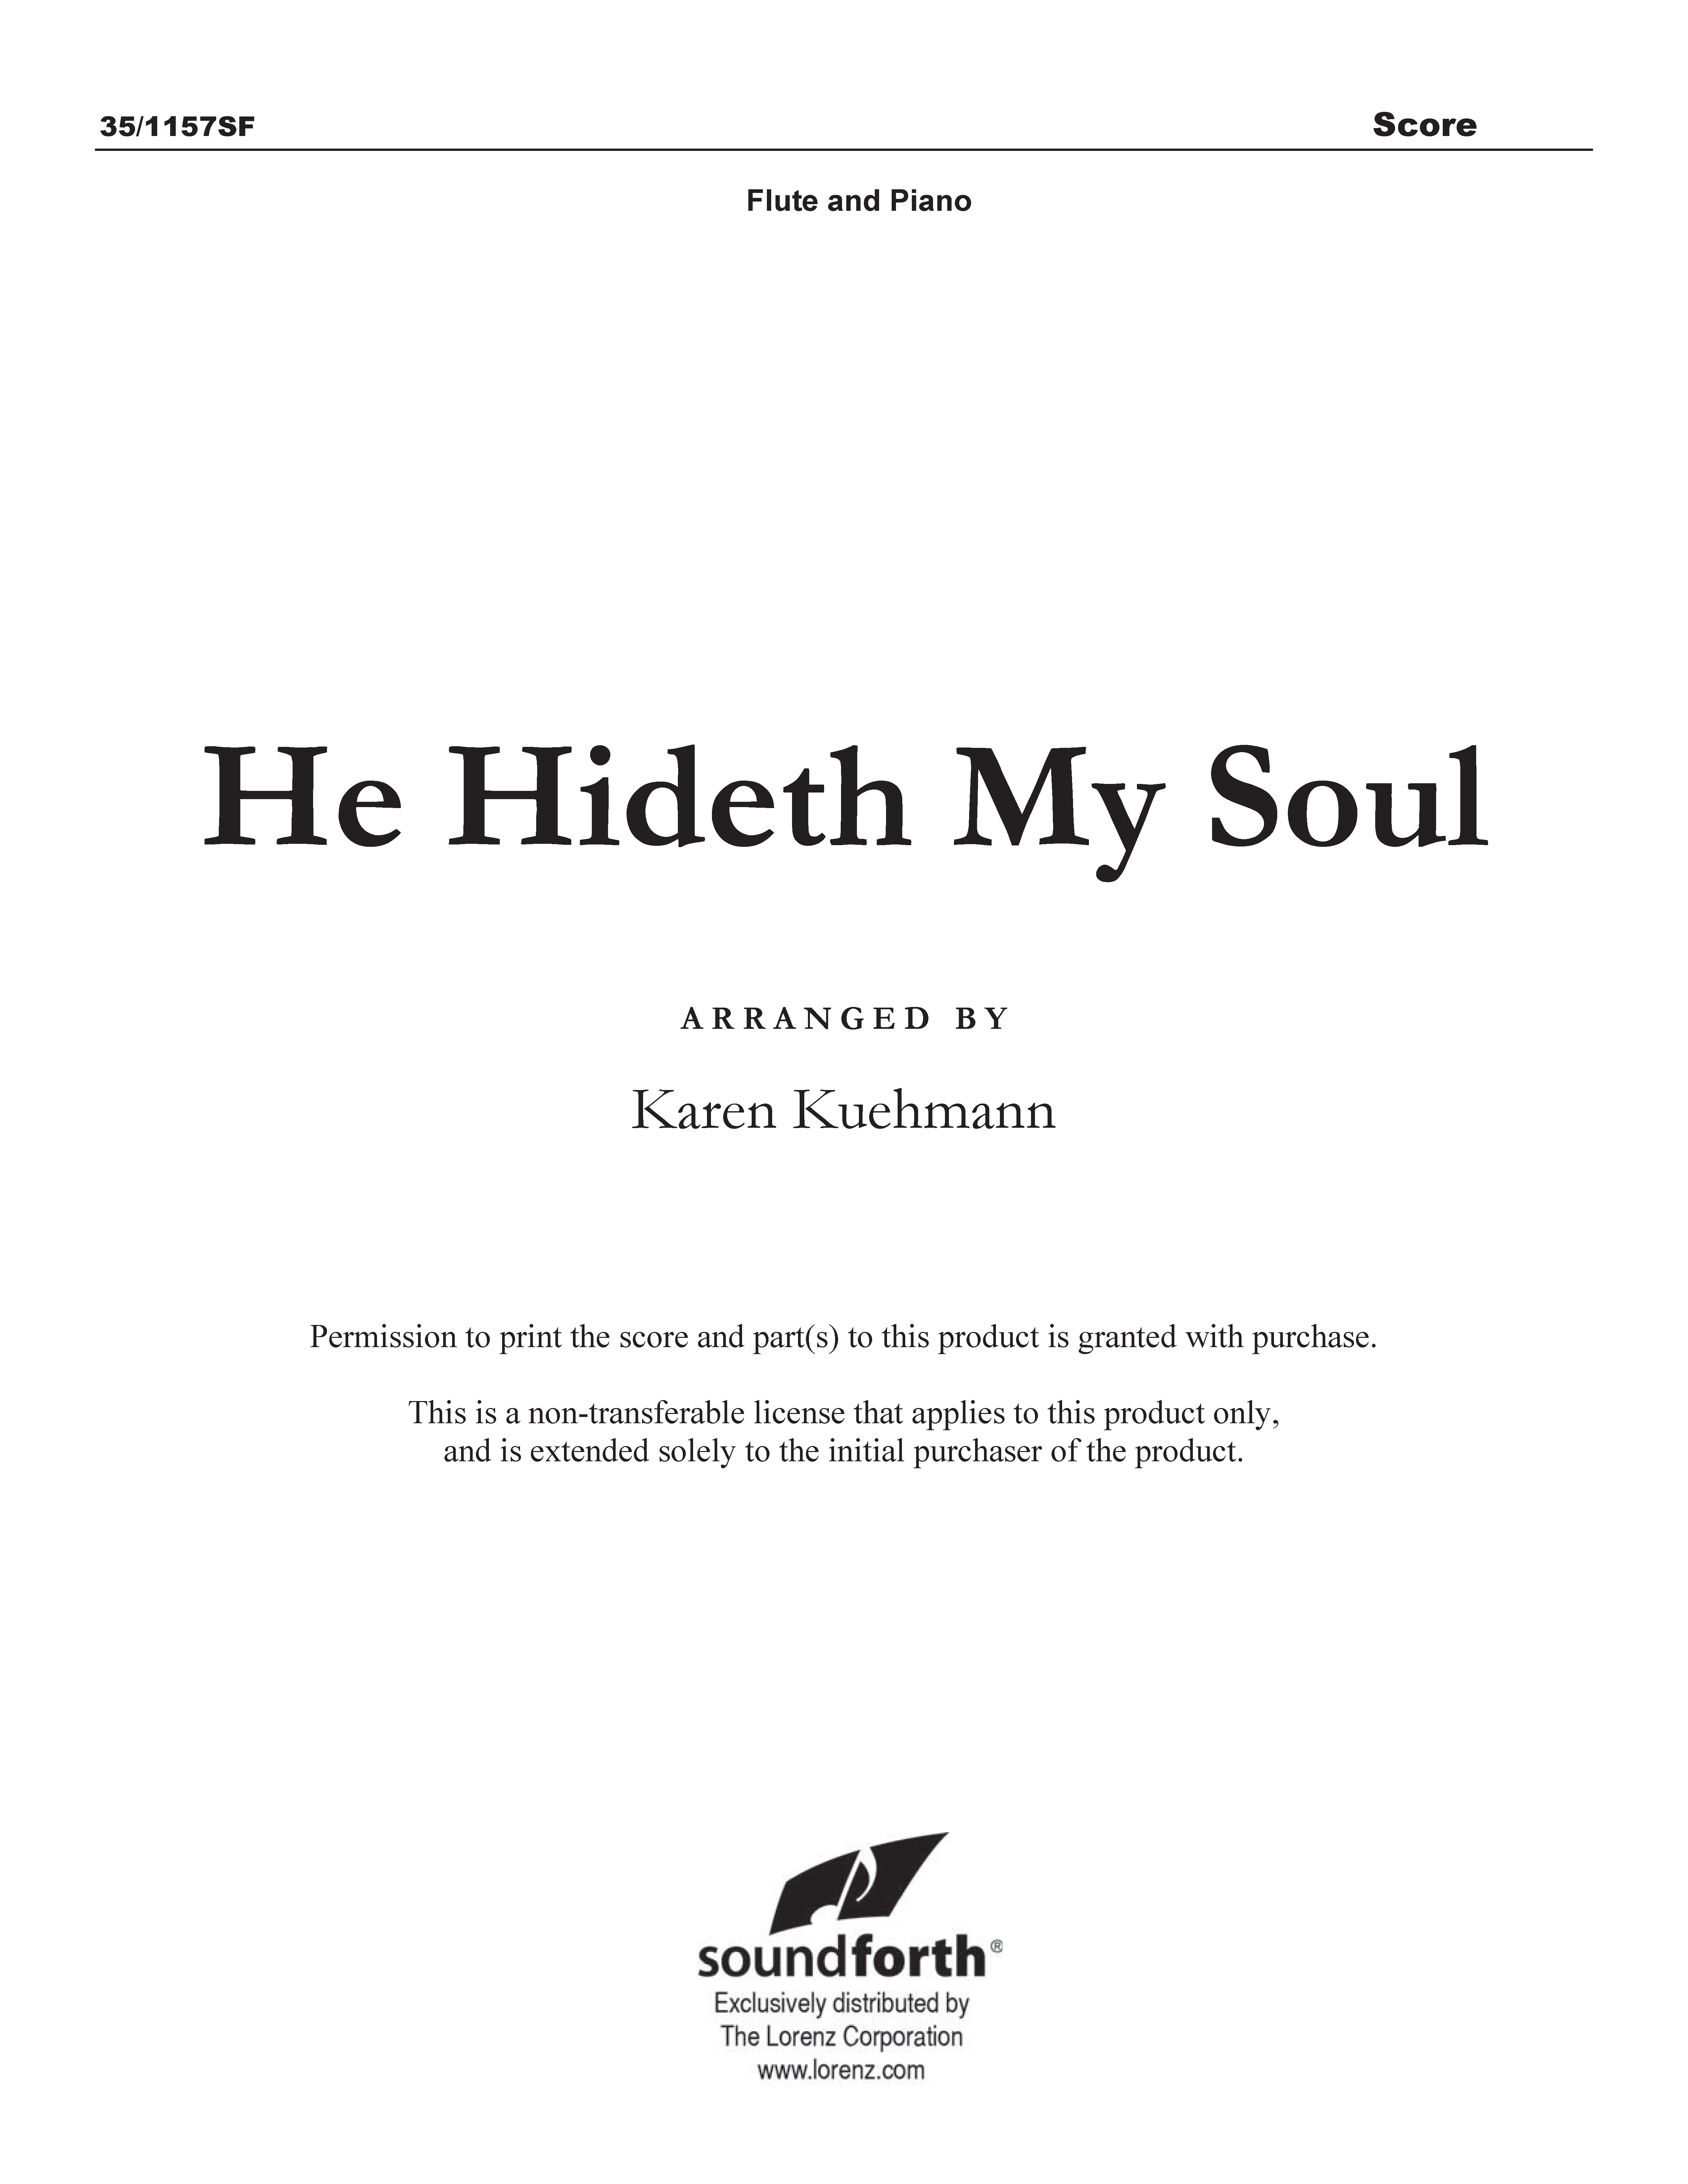 He Hideth My Soul (Digital Delivery)